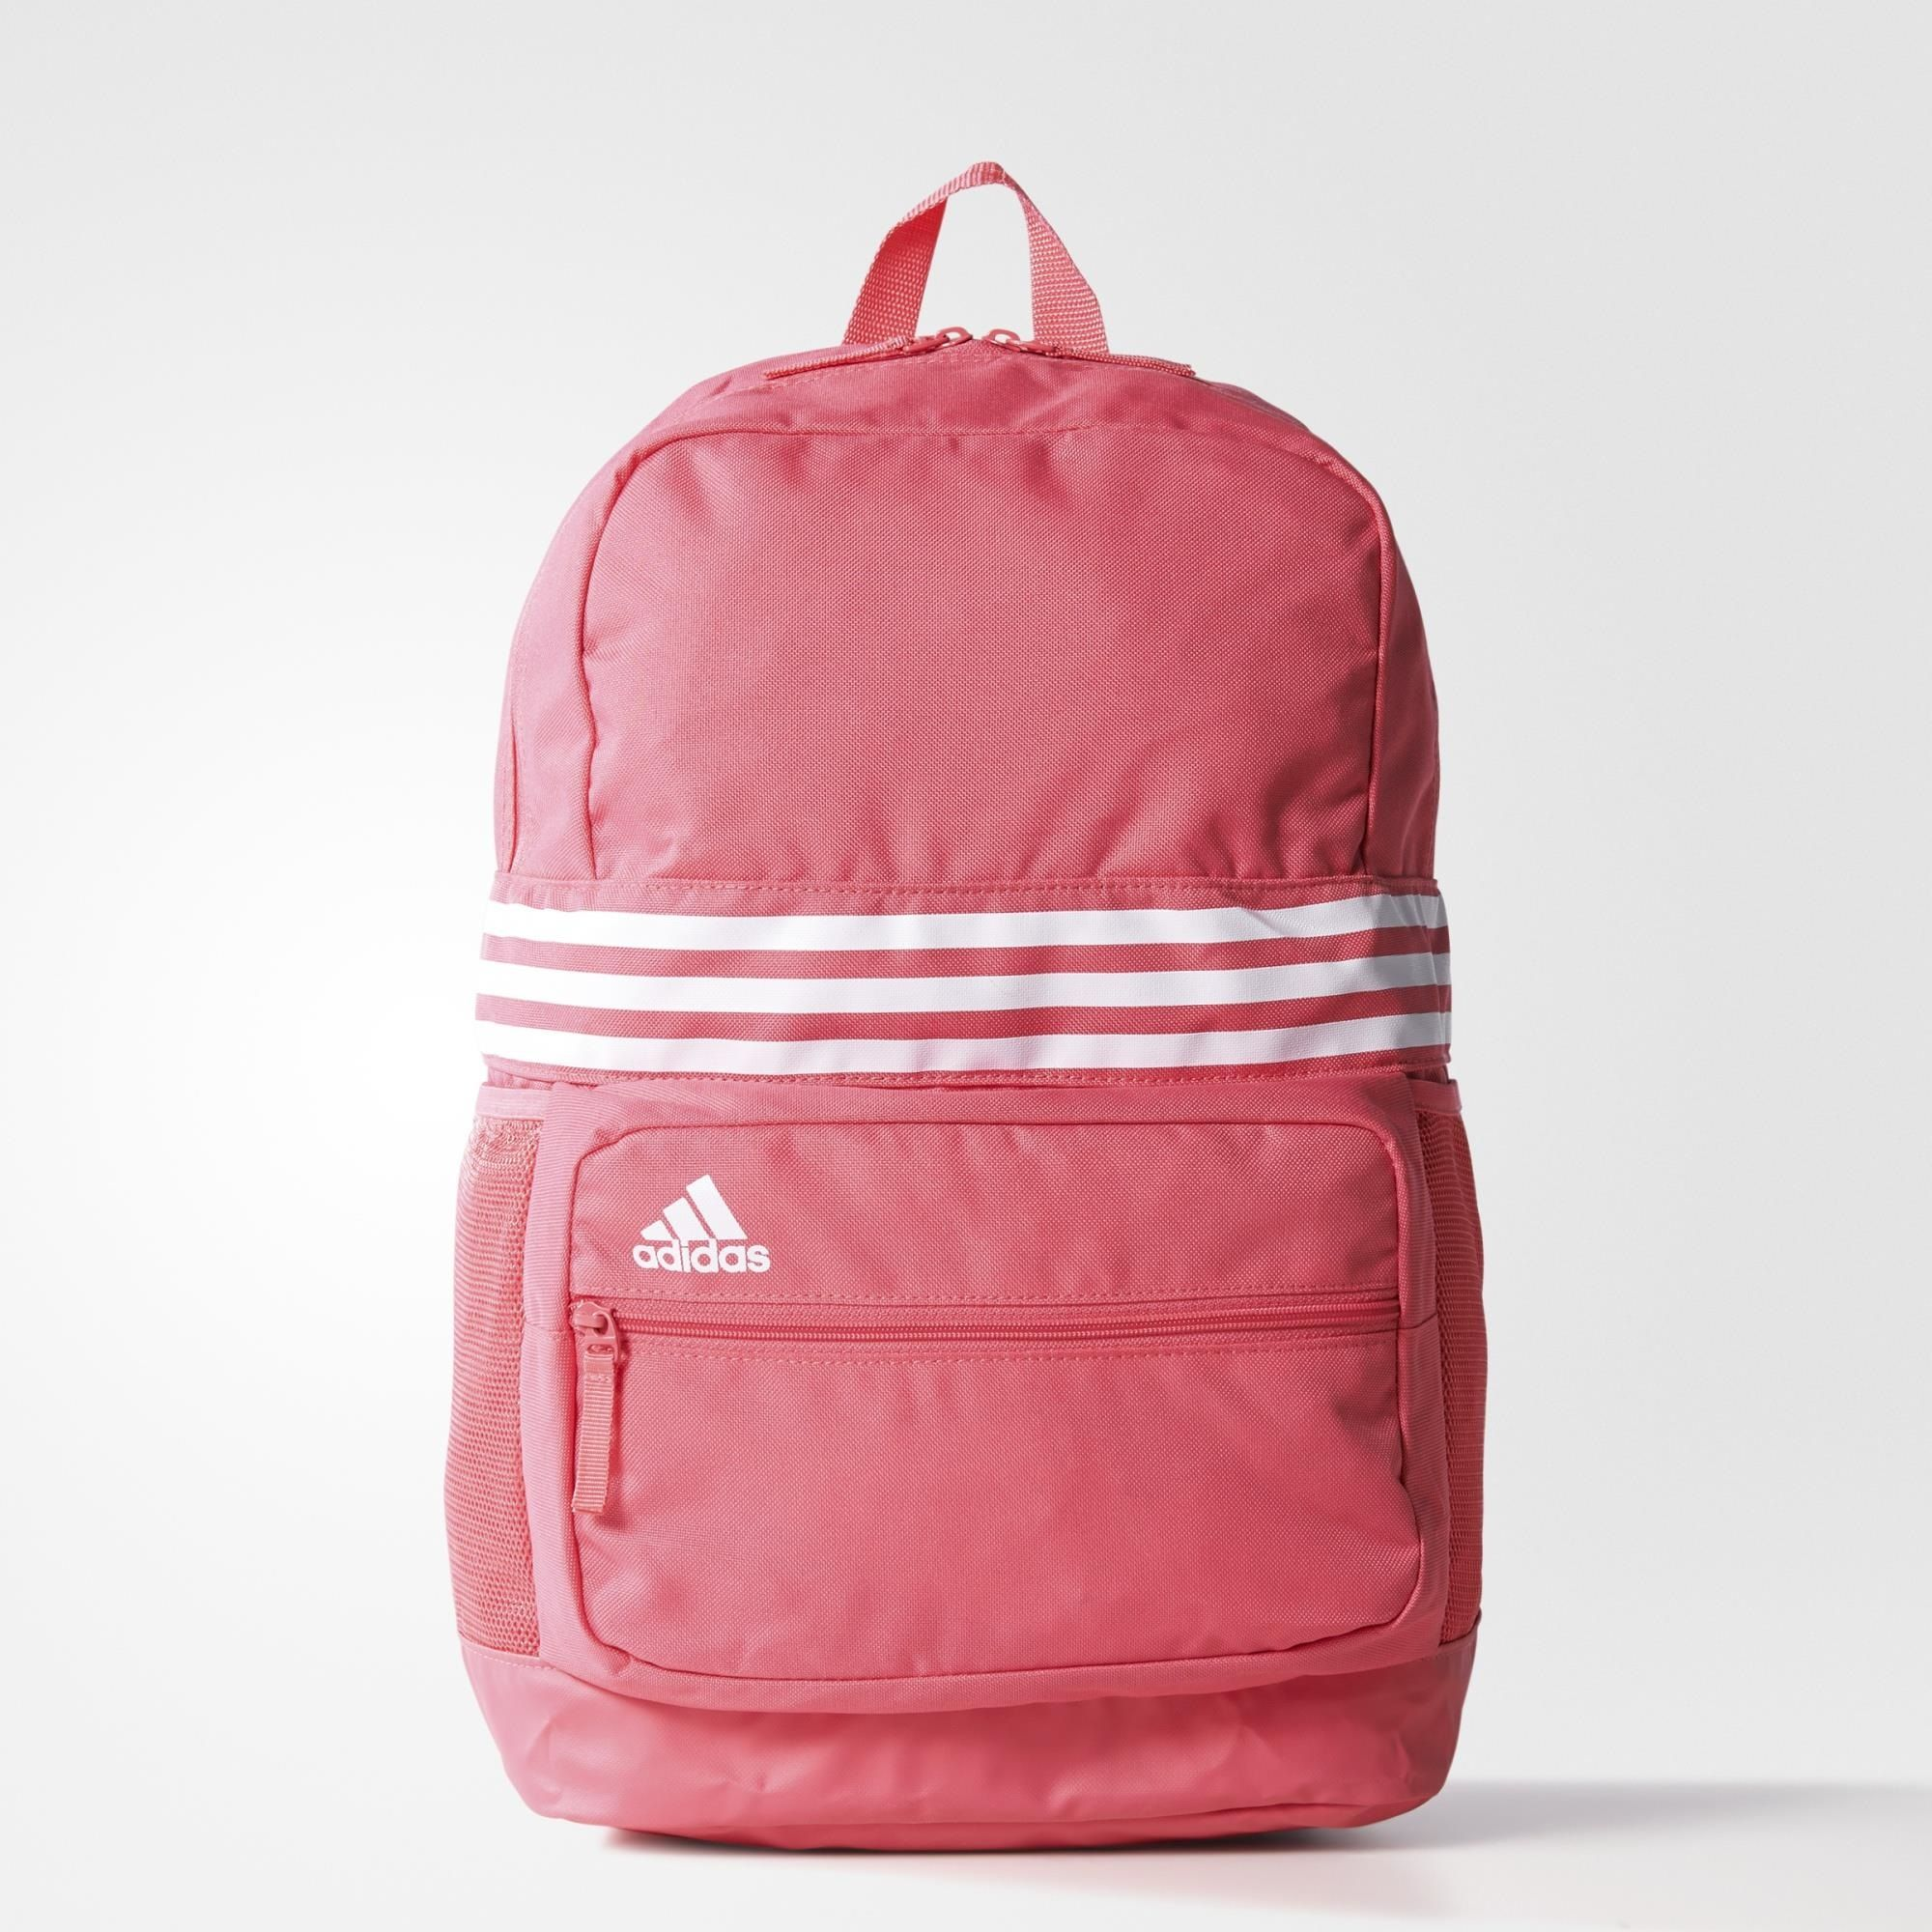 adidas 3 stripes backpack pink